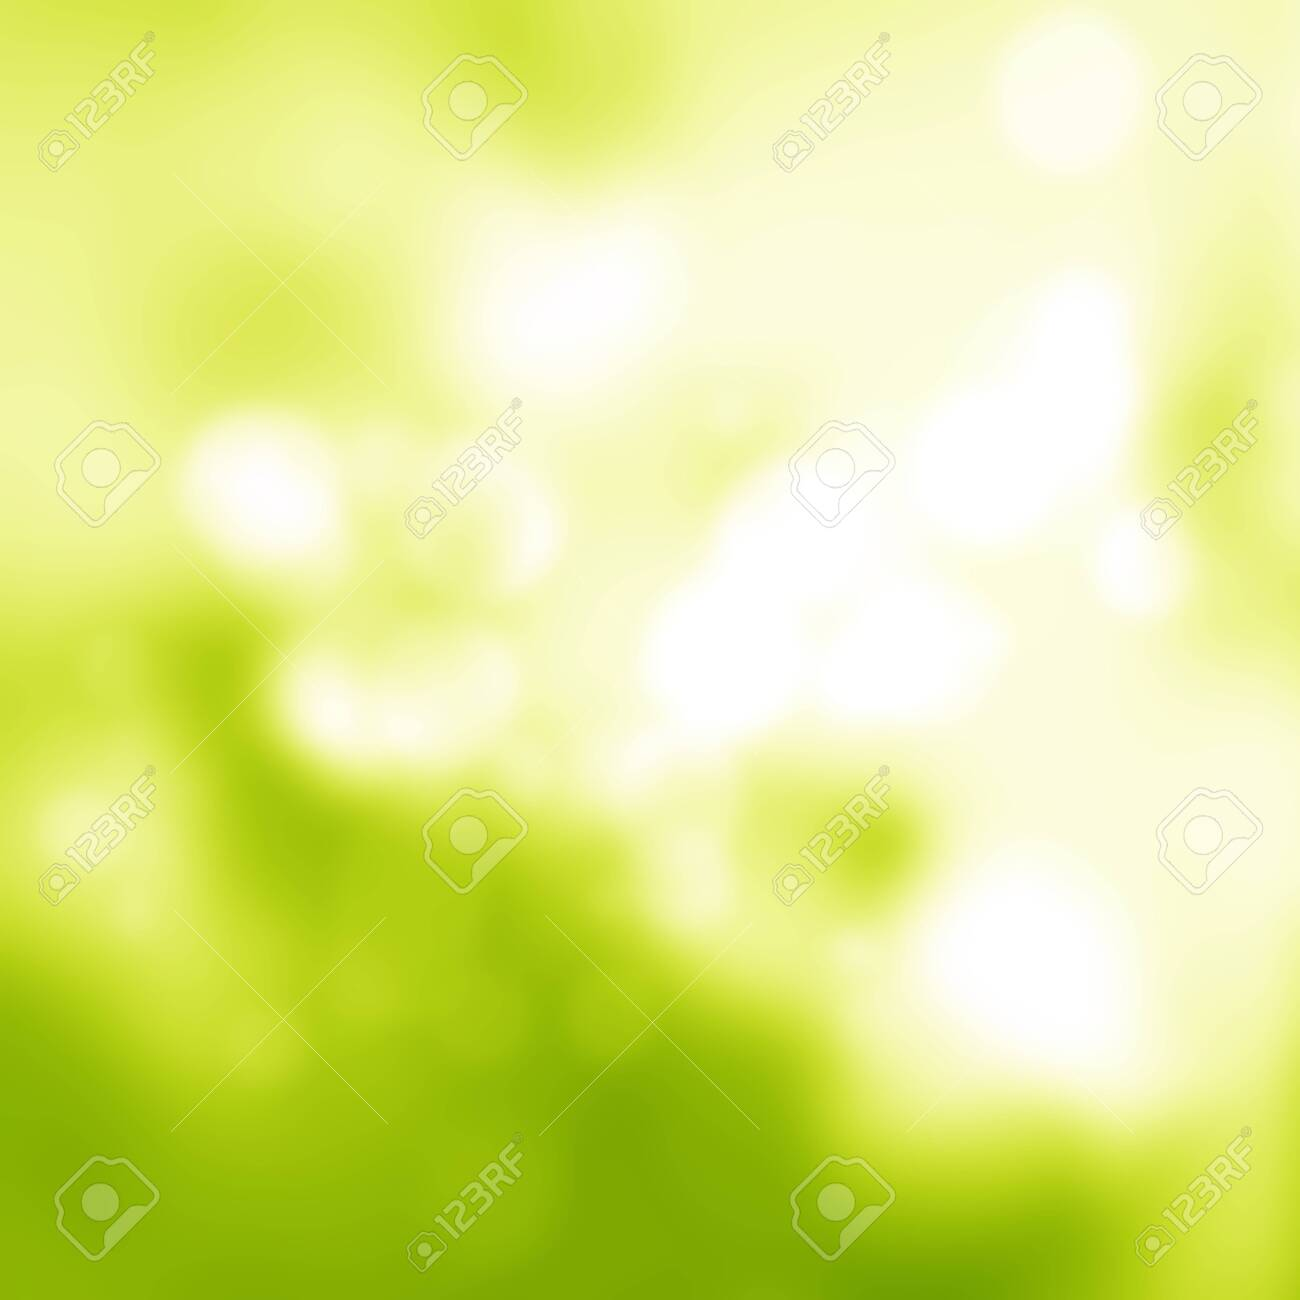 Sunny abstract green soft nature background. Fresh nature. Nature blurred light abstract background / Natural outdoors bokeh background, Blurred forest background - 133227764